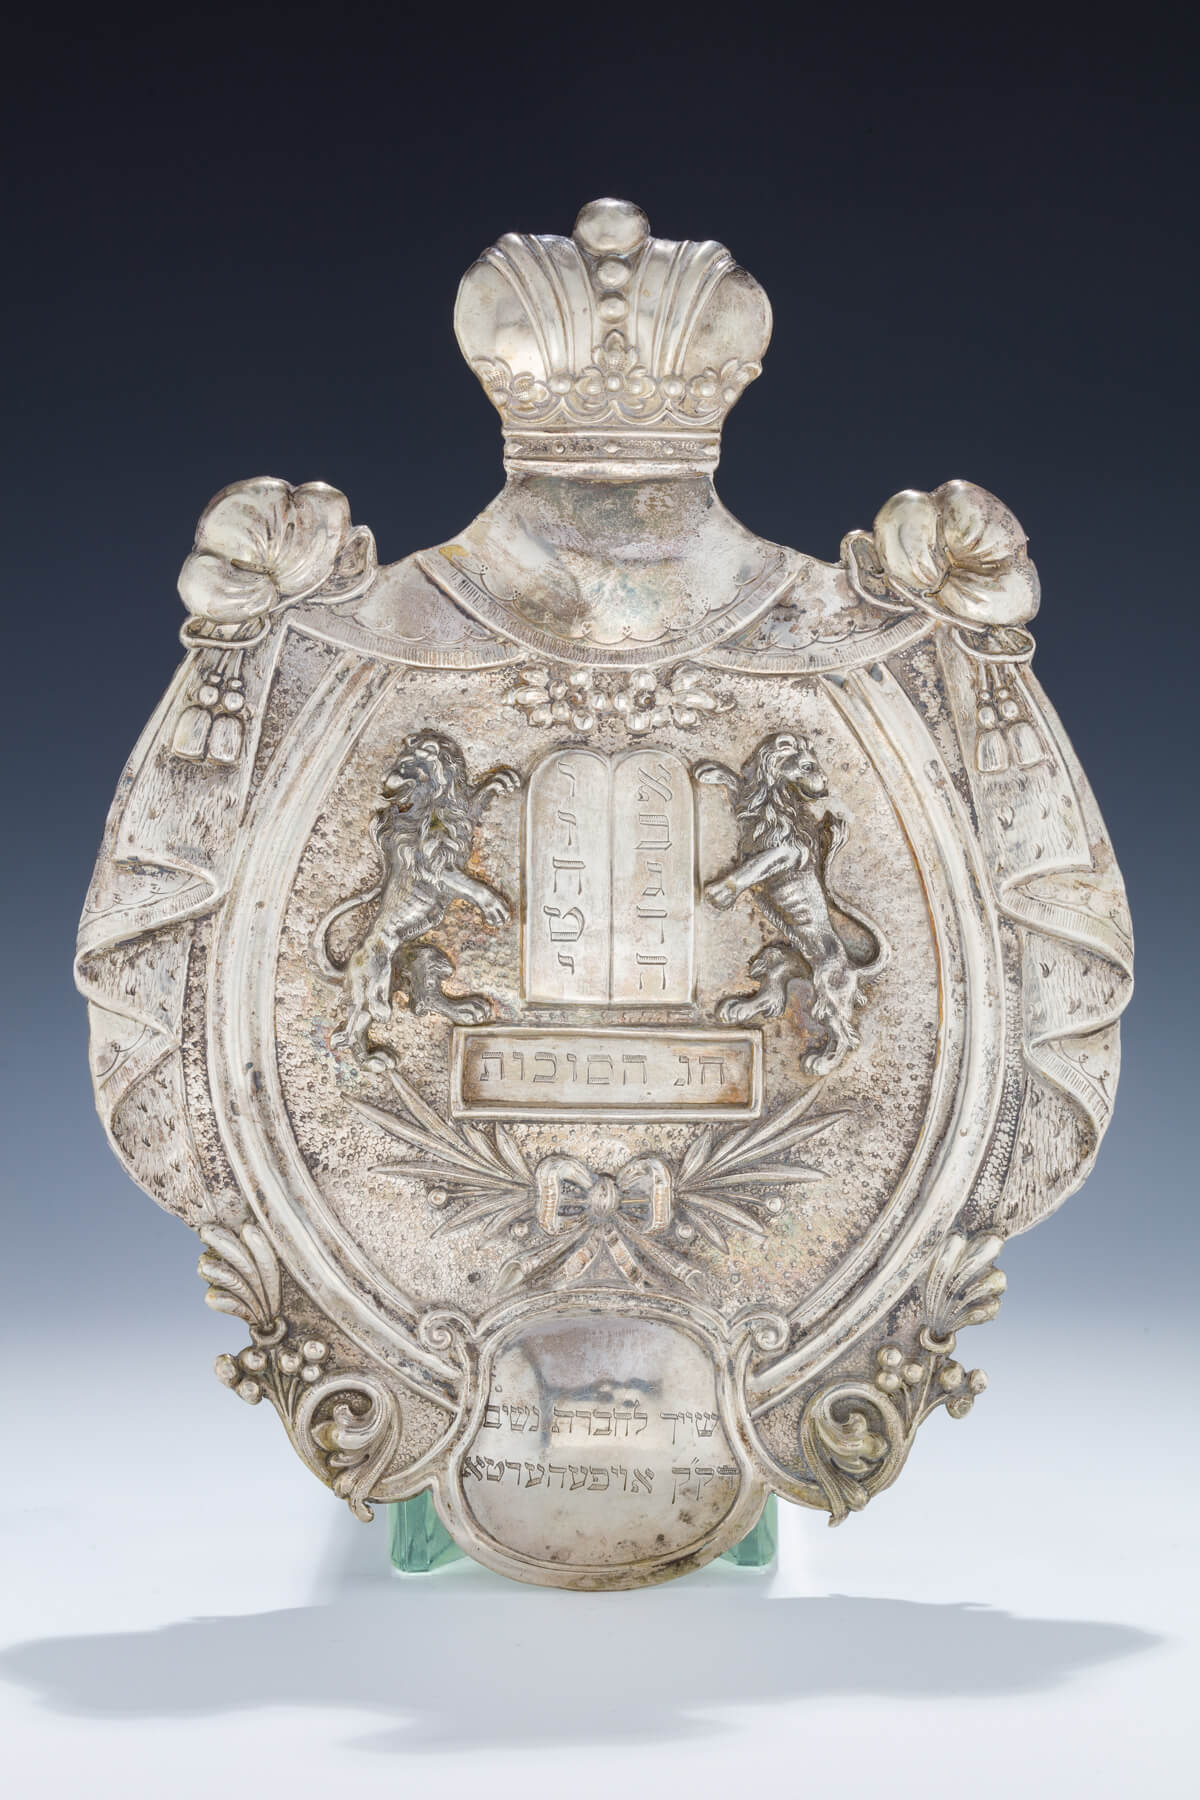 044. A Silver Torah Shield